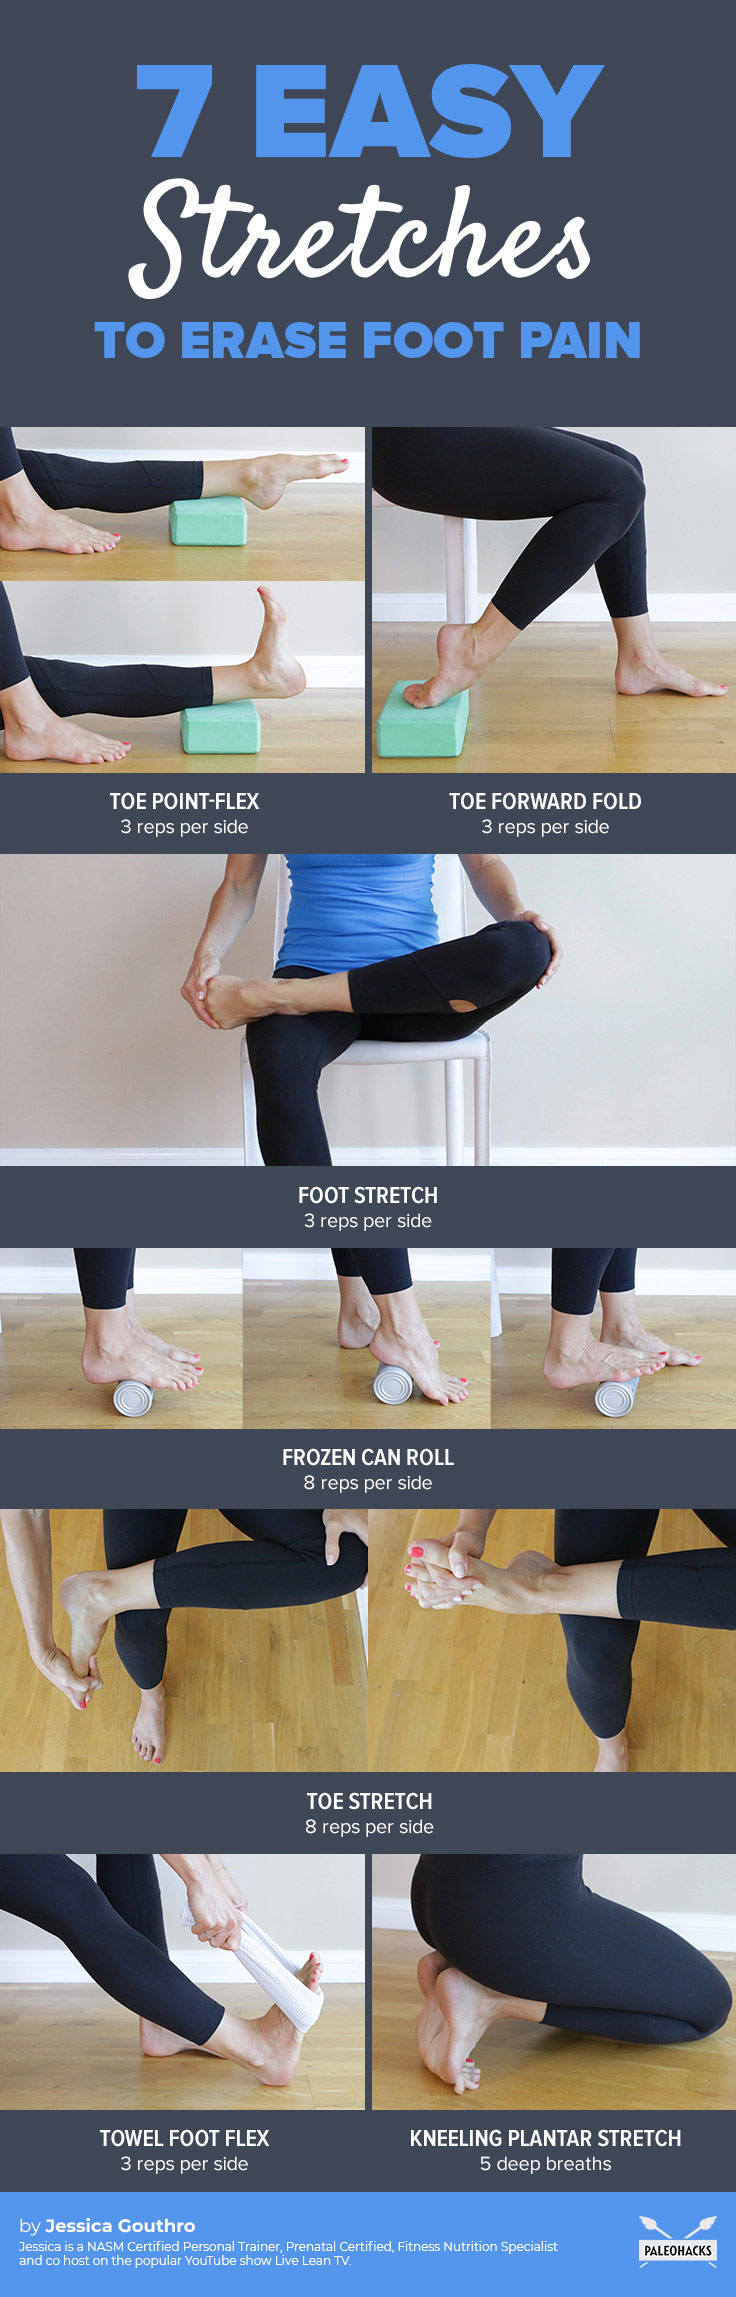 7-Easy-Stretches-to-Erase-Foot-Pain-infog.jpg